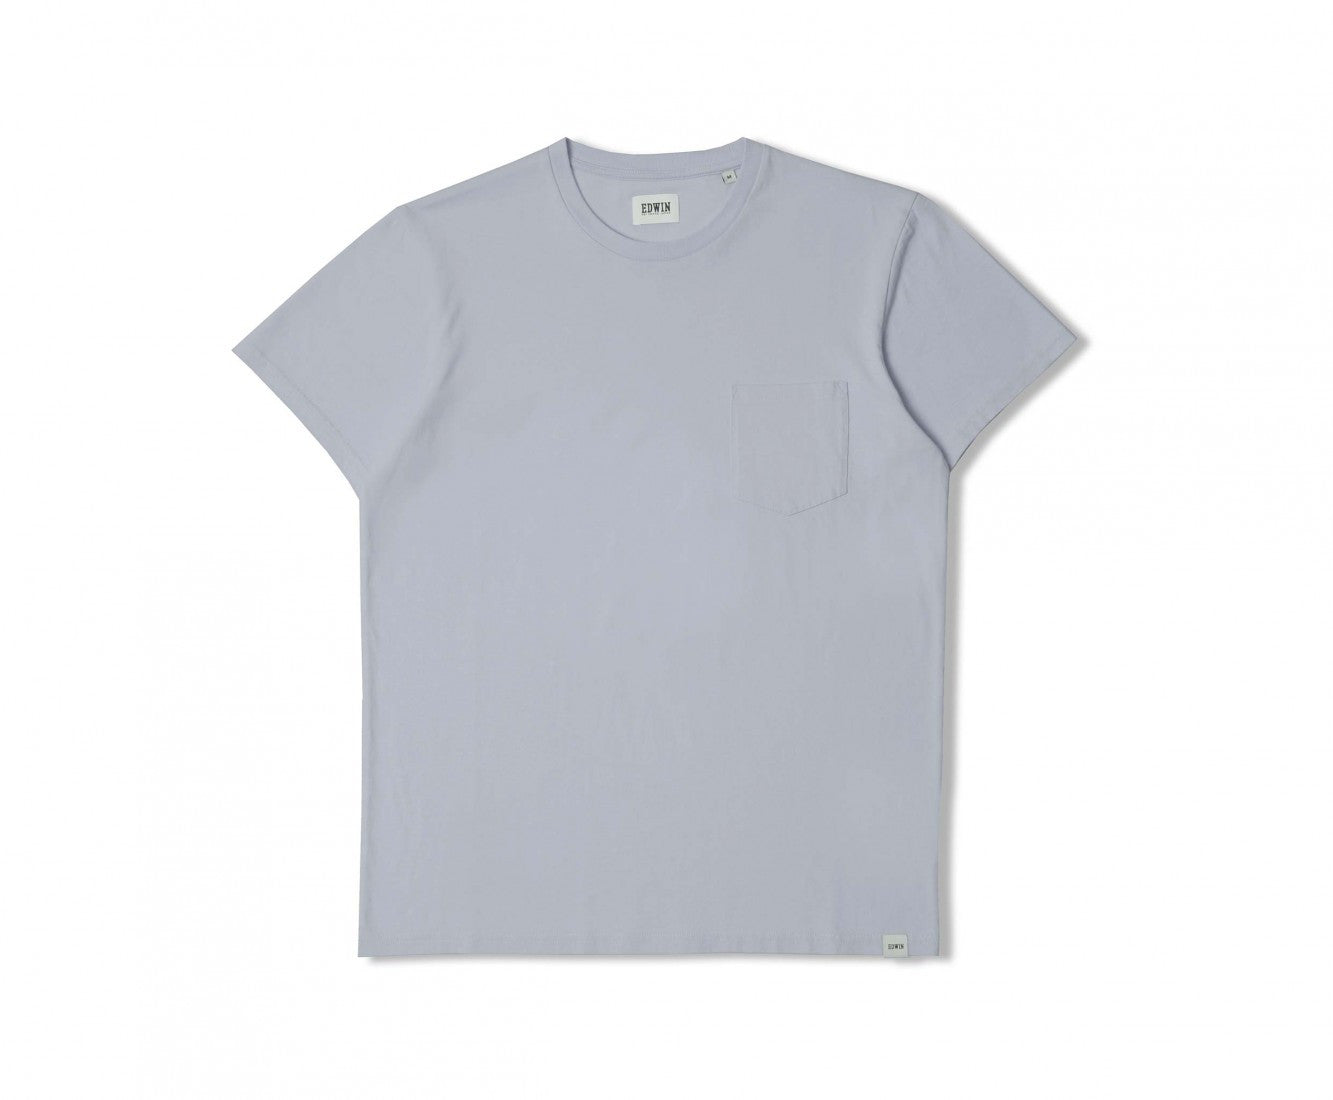 Edwin Europe Pocket Tee - Ciel Clair-Denim-Navy Selected Shop